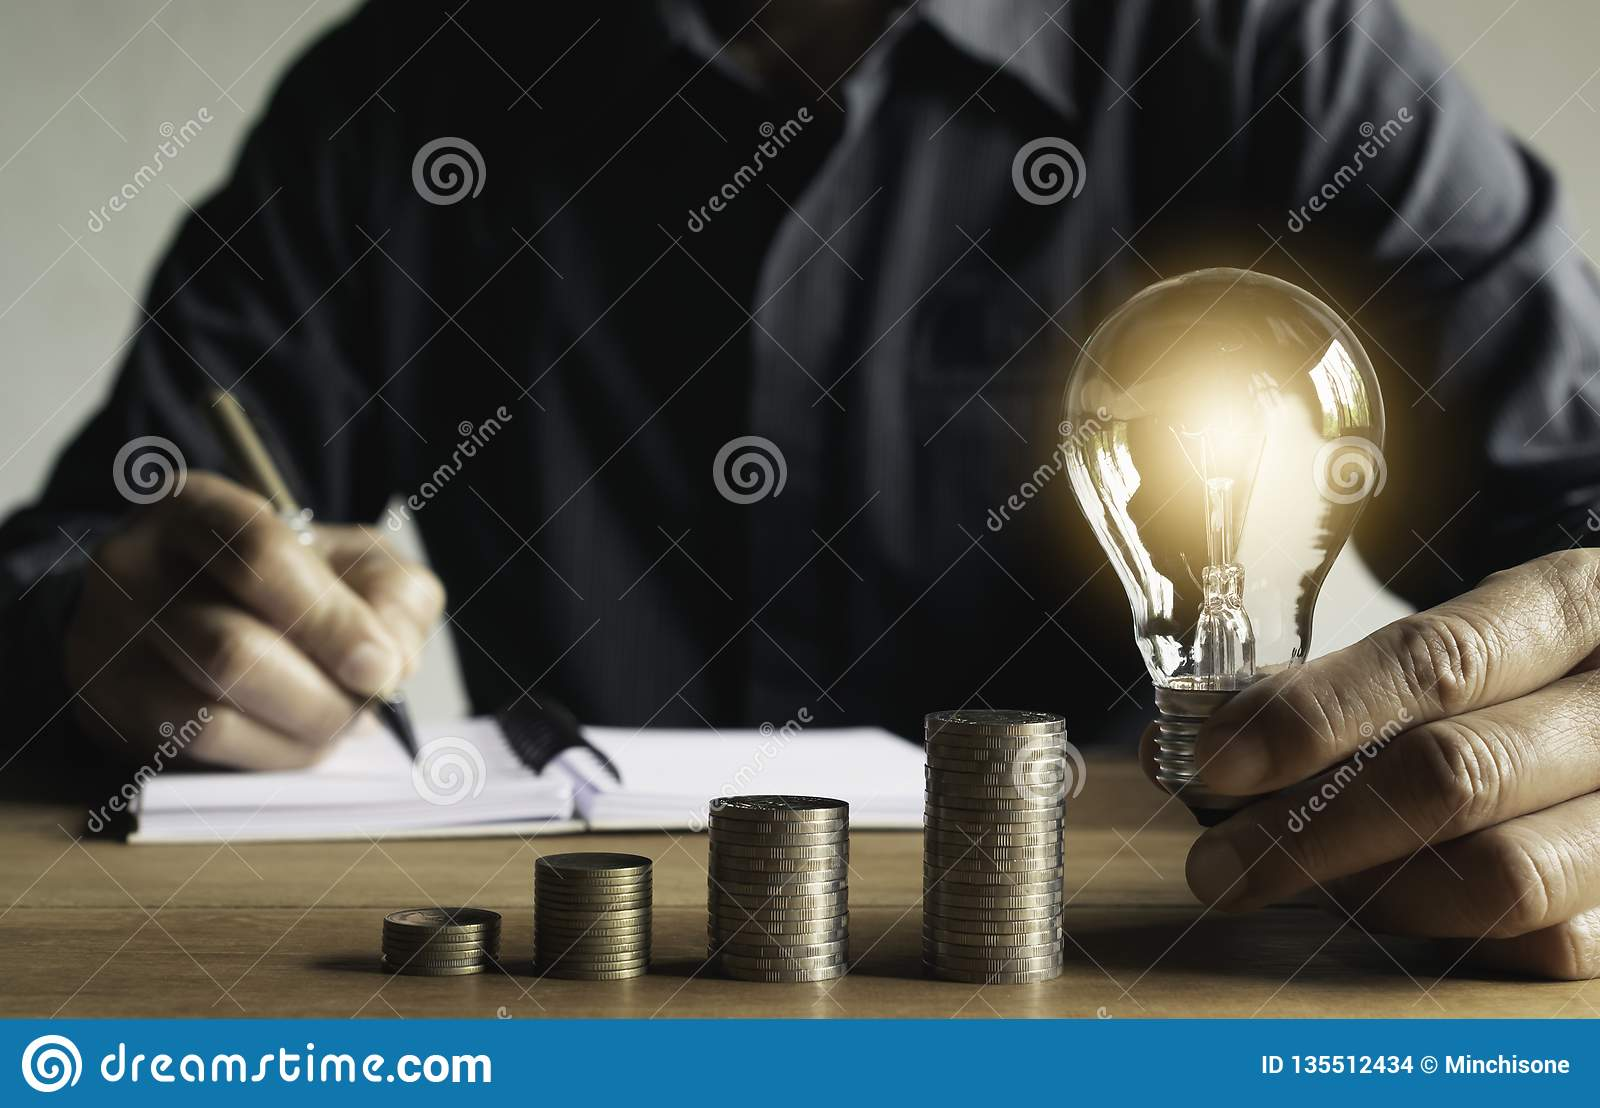 Business man putting a coin on coins stack saving bank and account for his money all in finance accounting concept